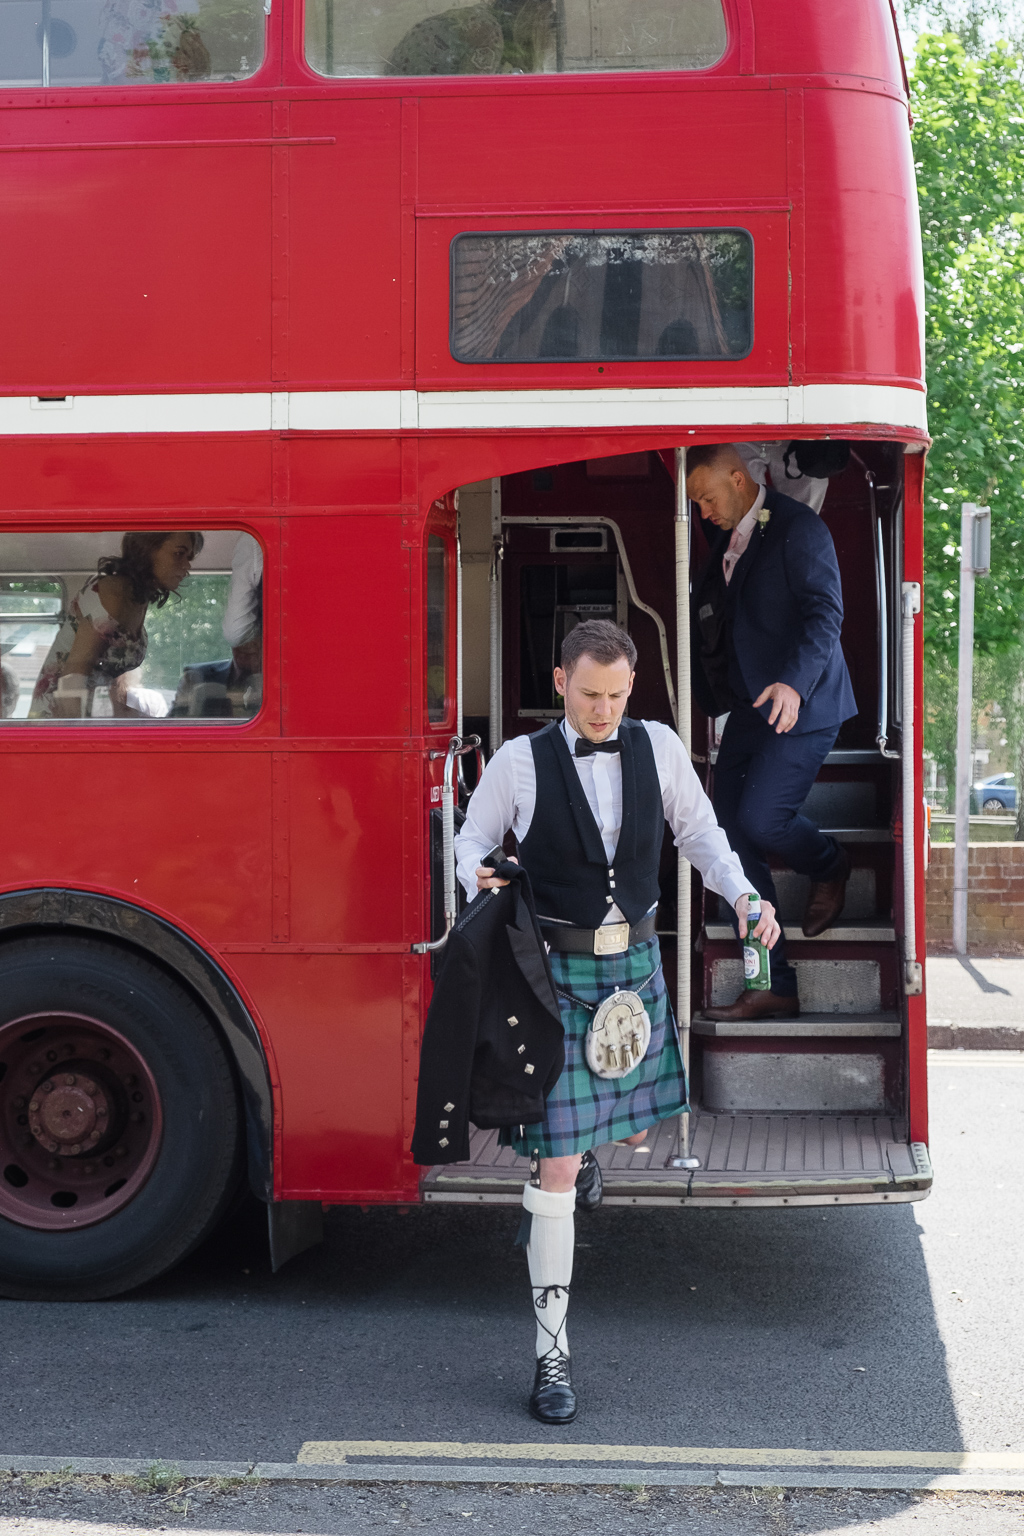 Guests Arriving On London Bus For Crayford Wedding | Crayford Wedding Photographers | Oakhouse Photography